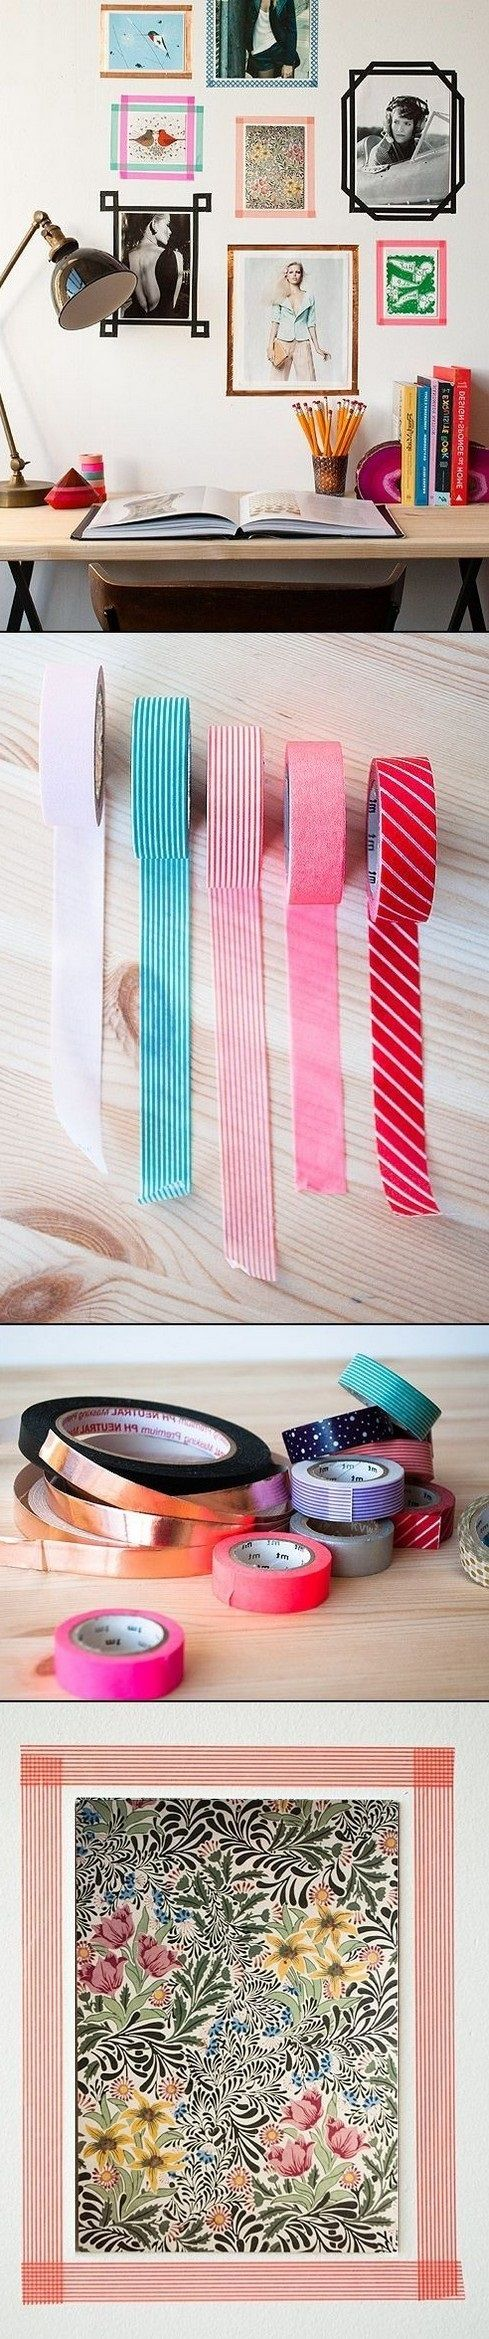 DIY TAPE PICTURES FRAME IDEAS